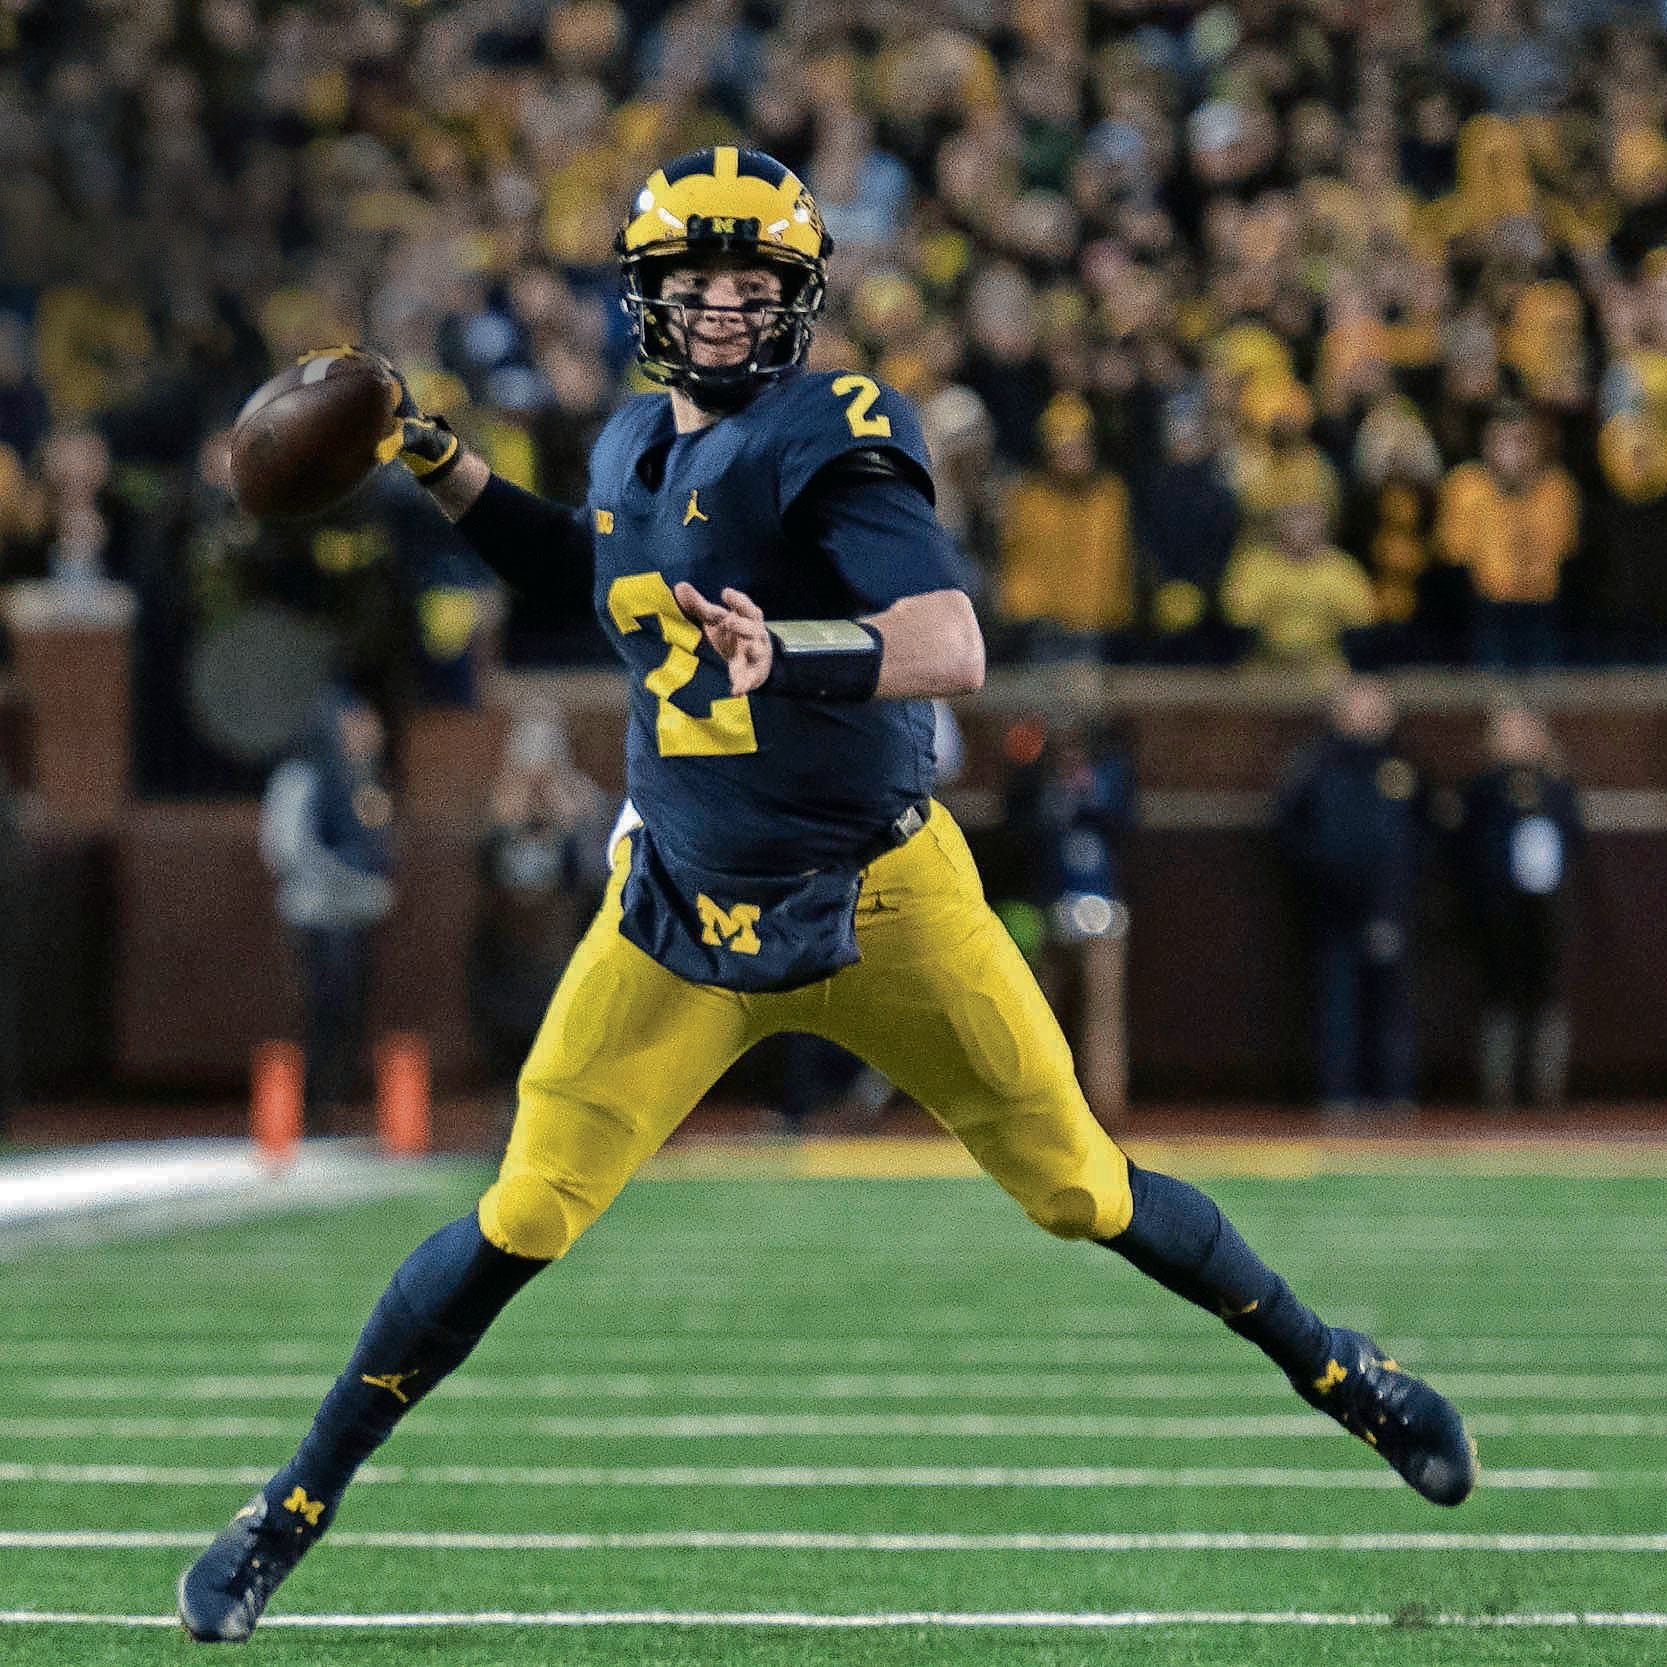 Michigan seen as likely College Football Playoff team